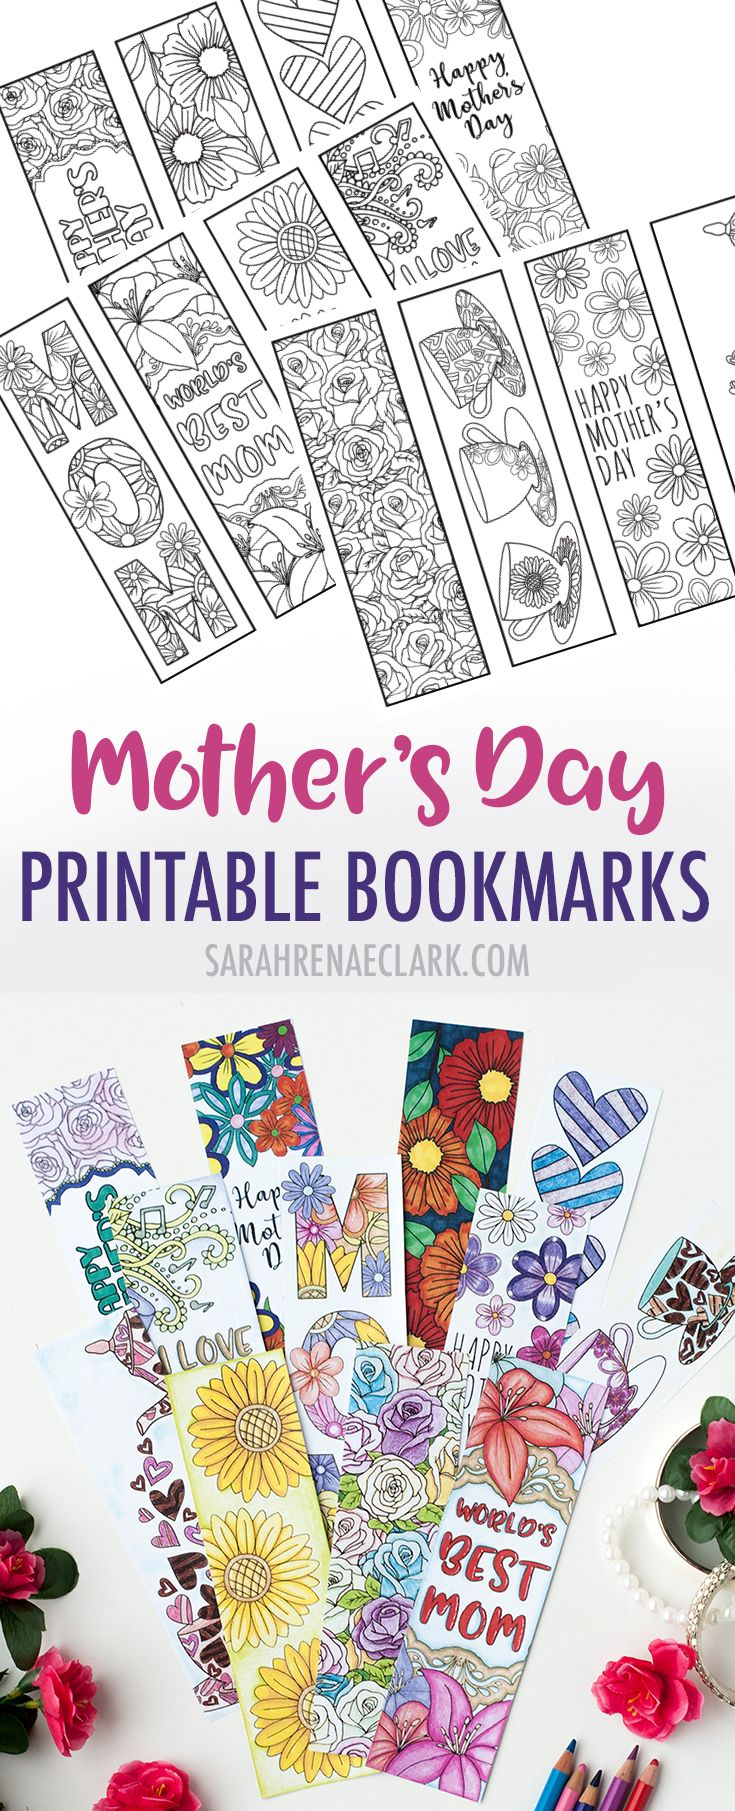 Mothers day coloring sheets for sunday school - Color And Make These Mother S Day Bookmarks For A Special Mom Includes 12 Printable Bookmarks